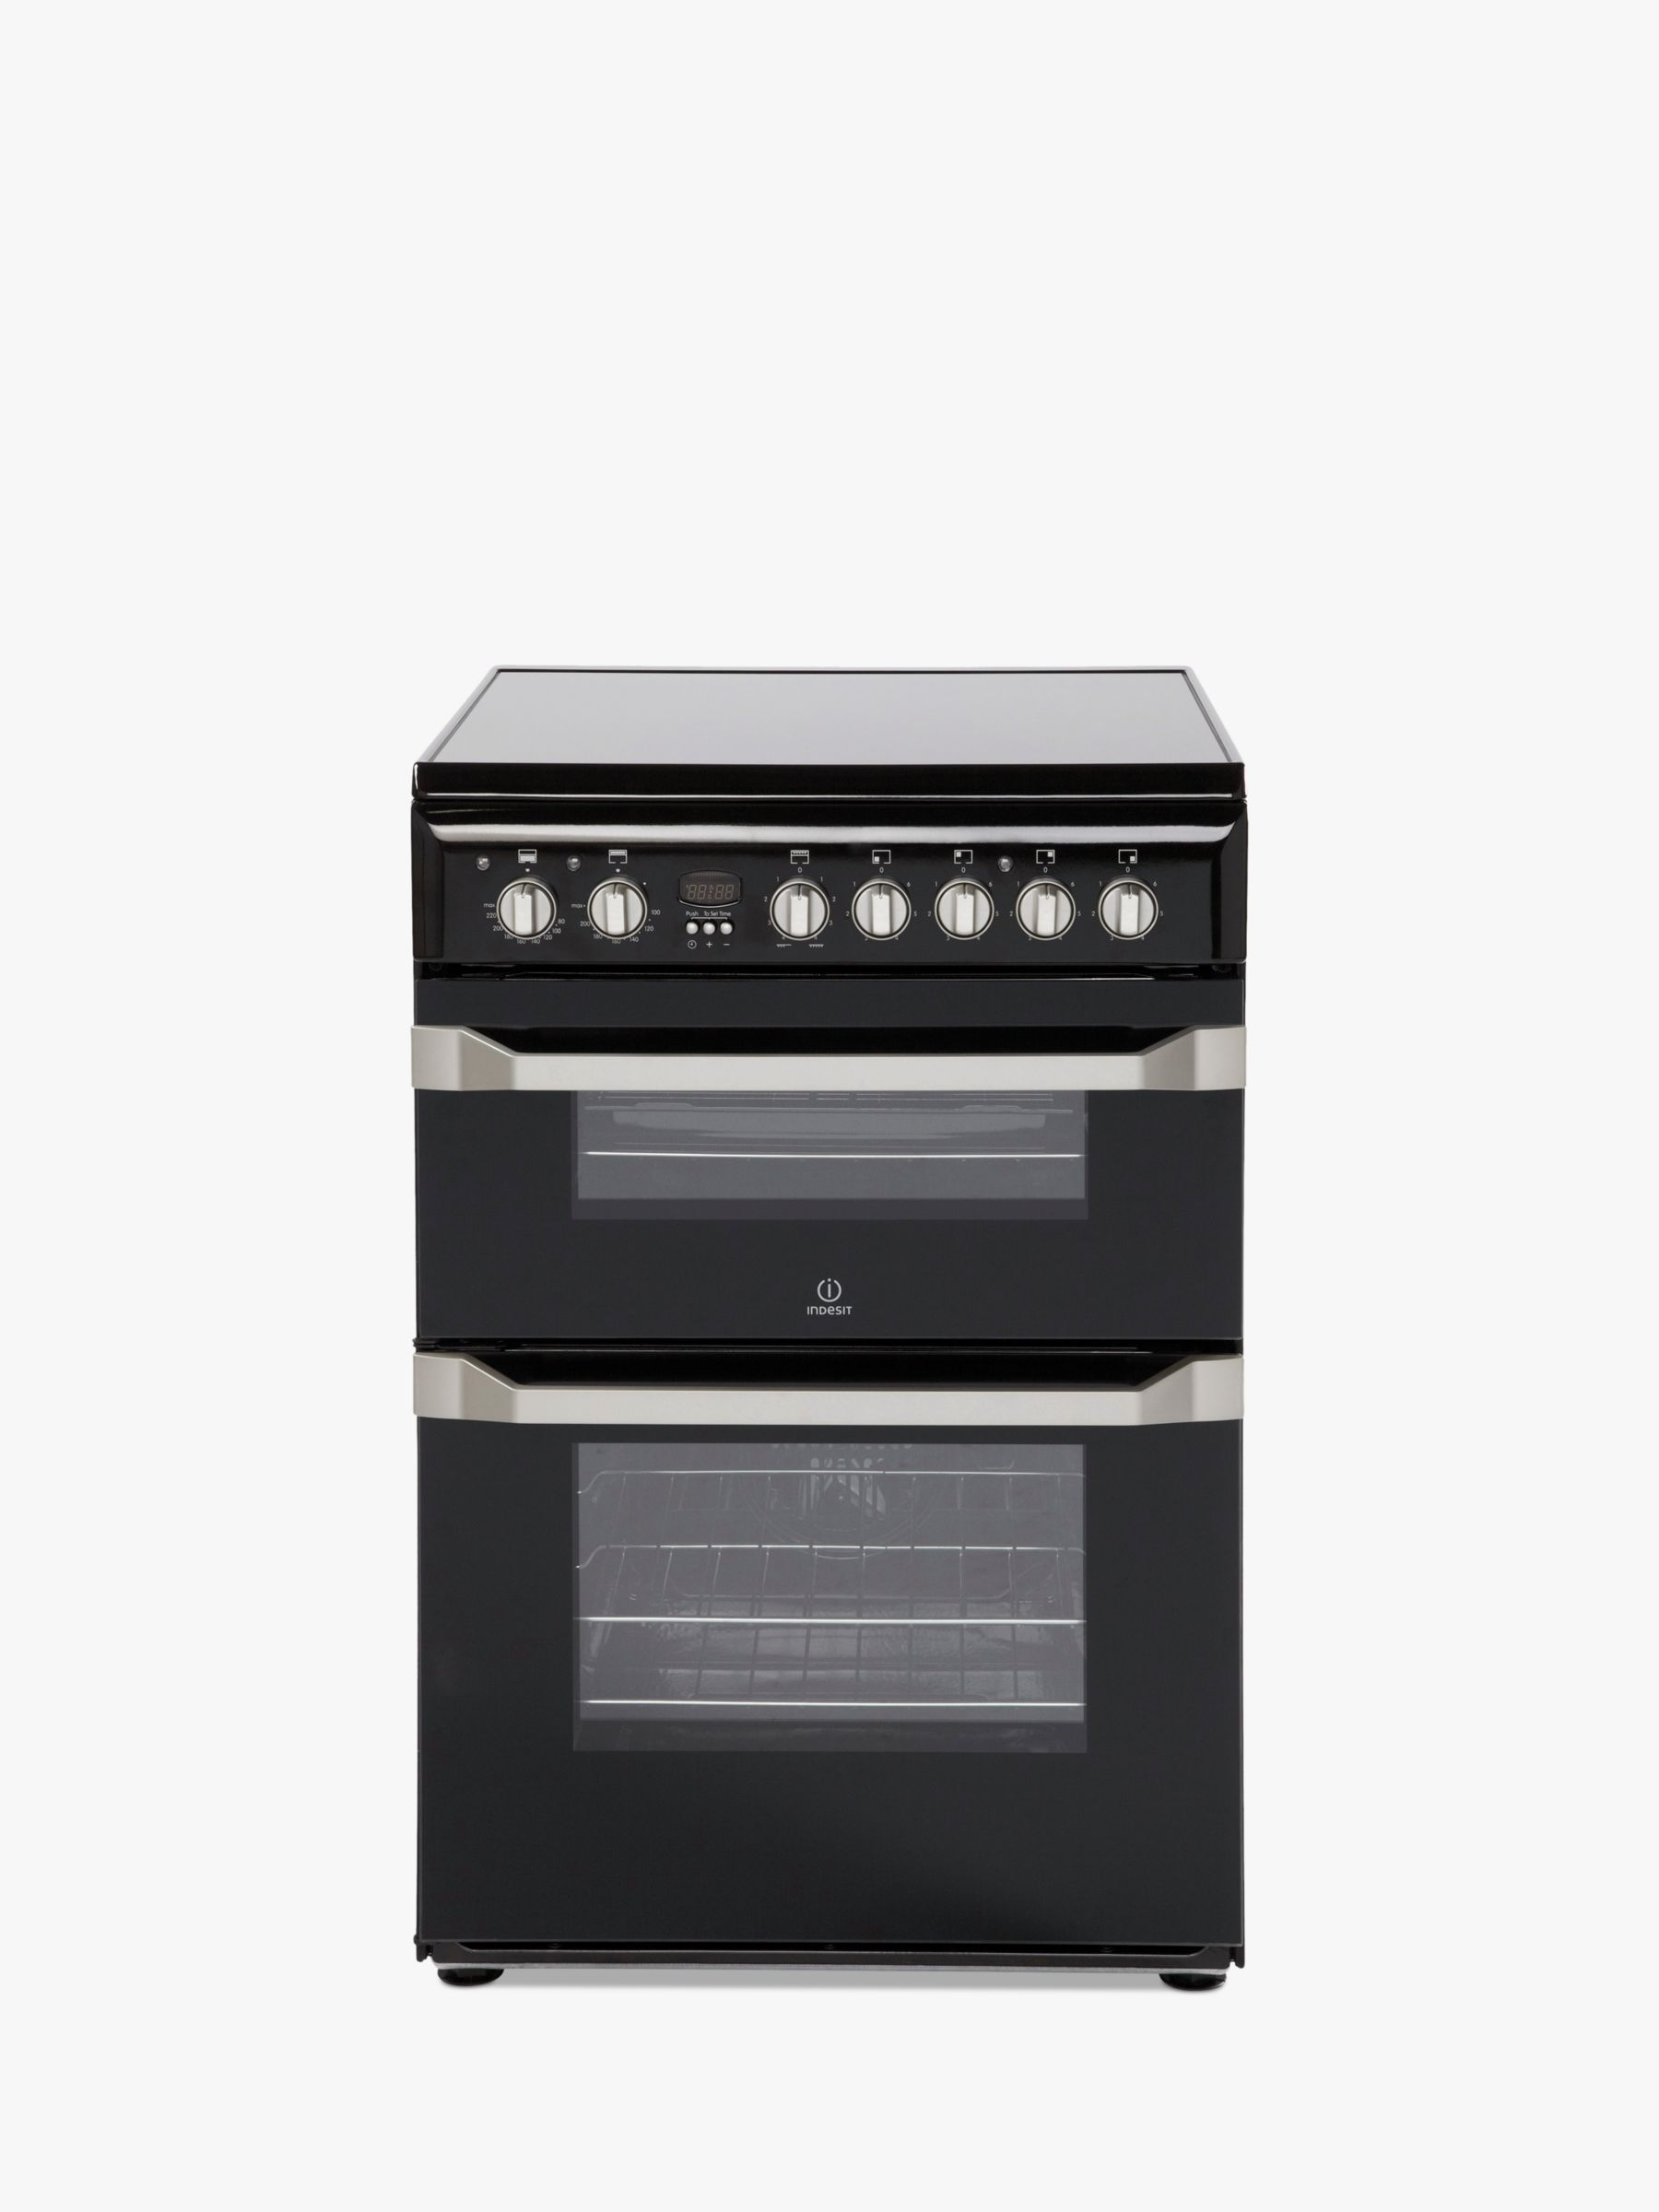 Indesit Indesit ID60C2(K) S 60cm Double Electric Cooker, A Energy Rating, Black